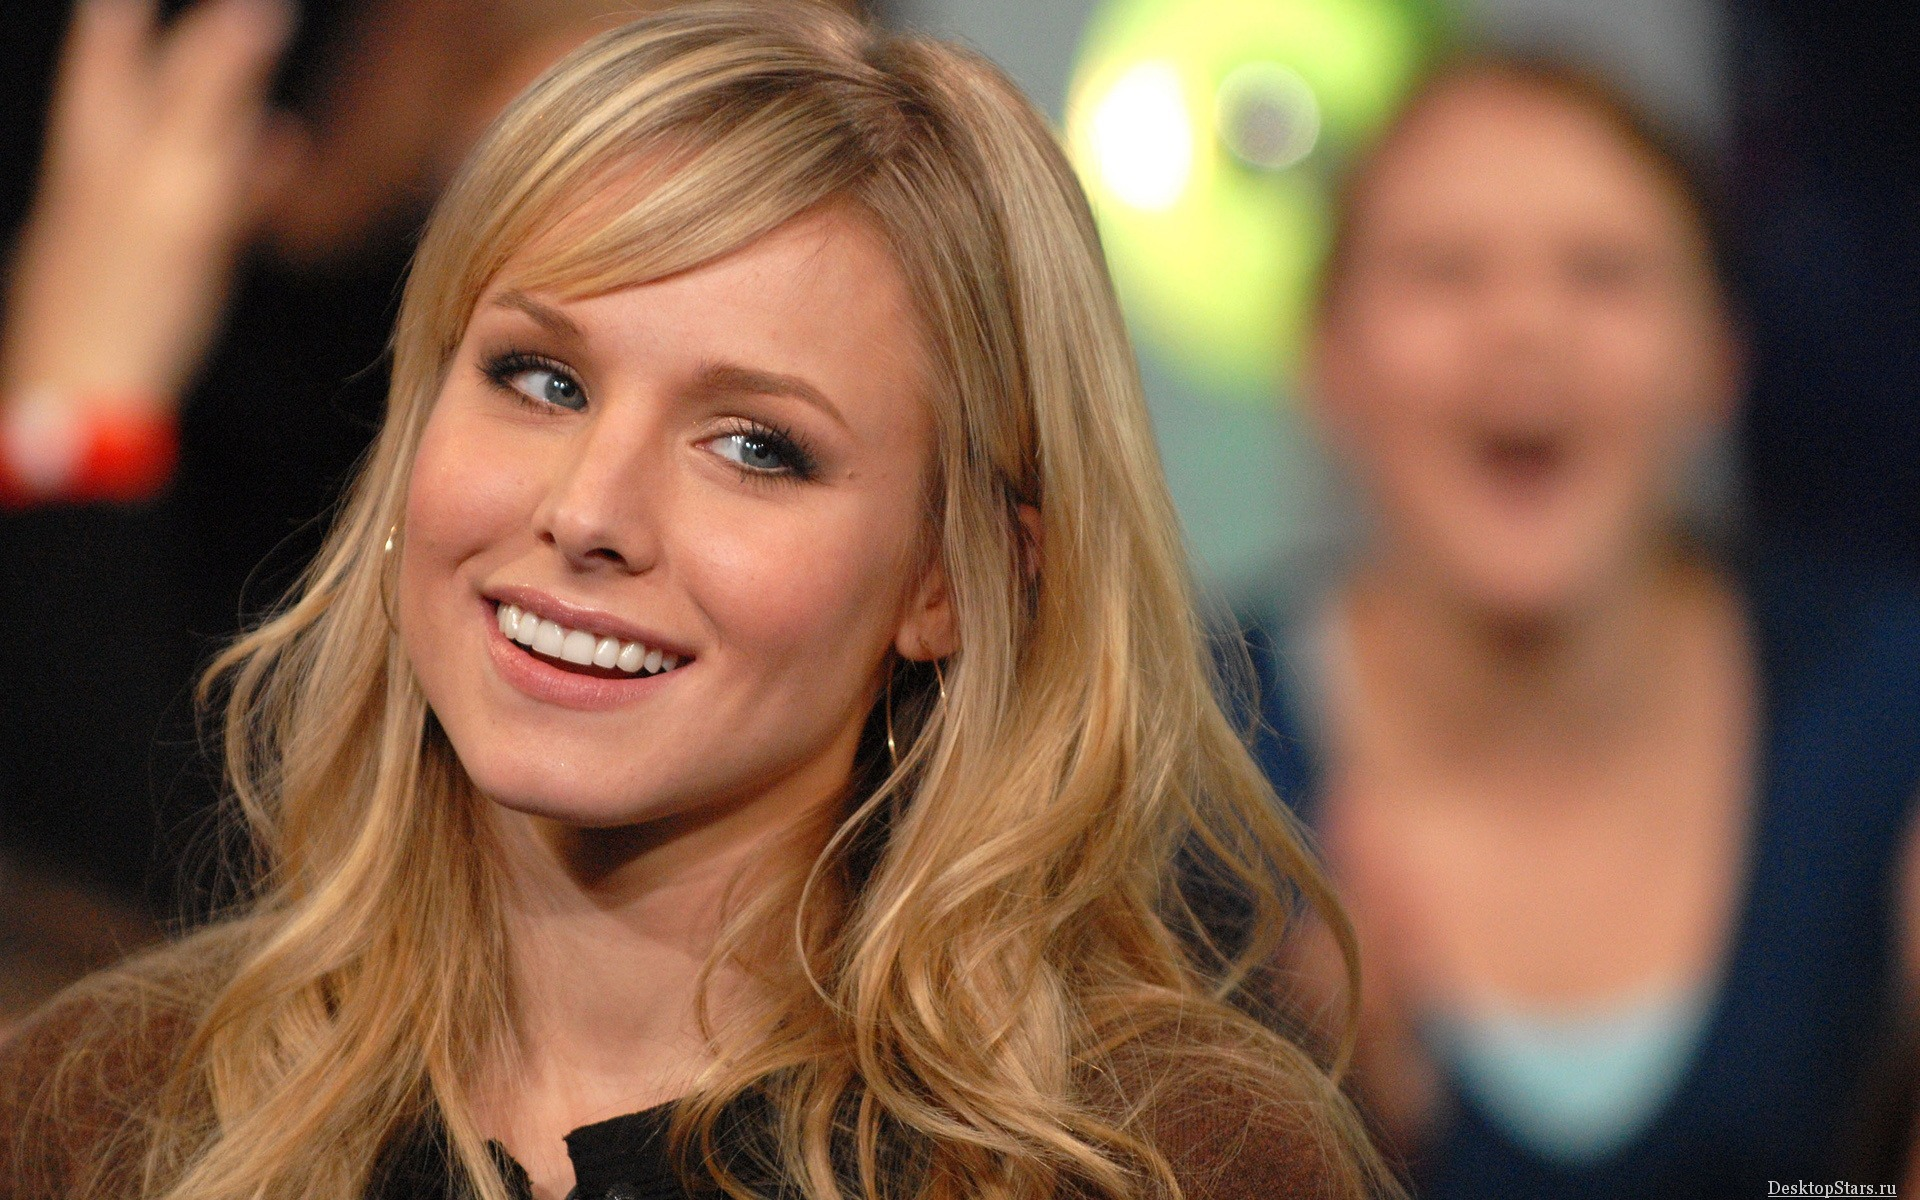 Kristen Bell #028 - 1920x1200 Wallpapers Pictures Photos Images